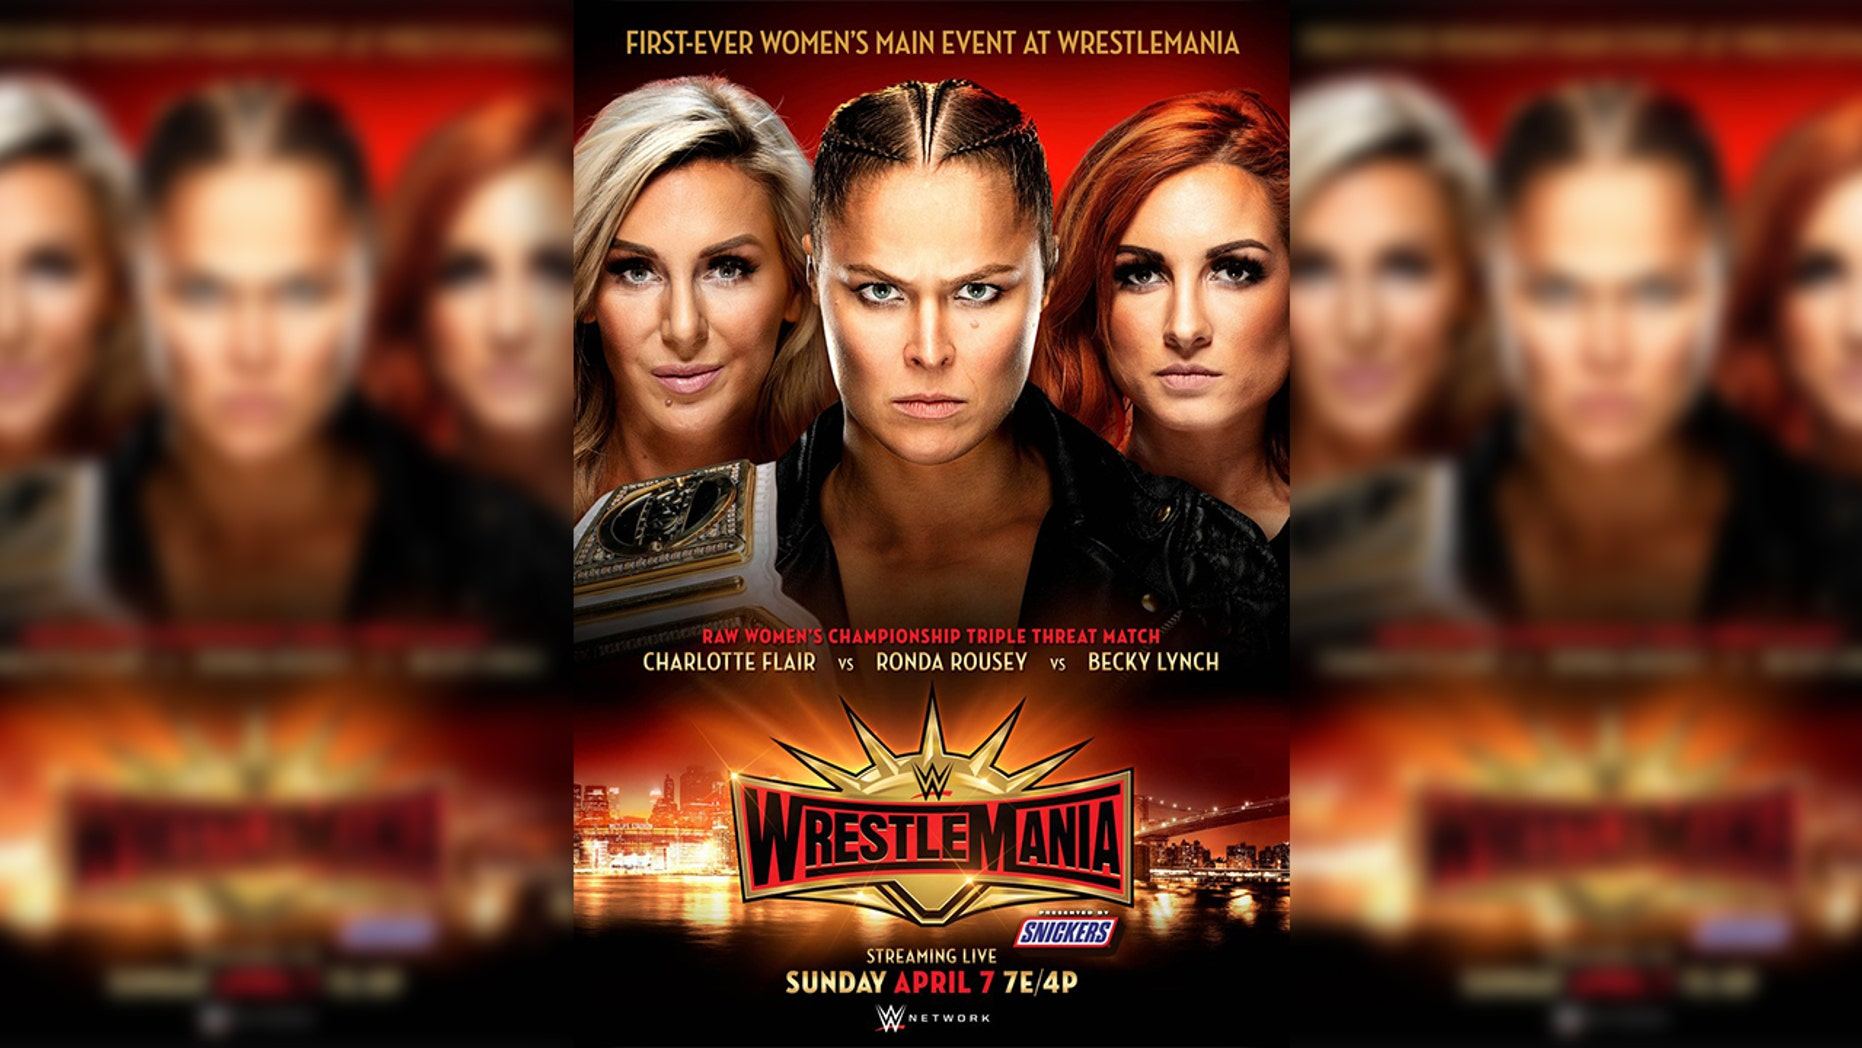 Becky Lynch, Charlotte Flair and Ronda Rousey compete in the WrestleMania tournament for the very first Ladies for the Raw Womens Championship.